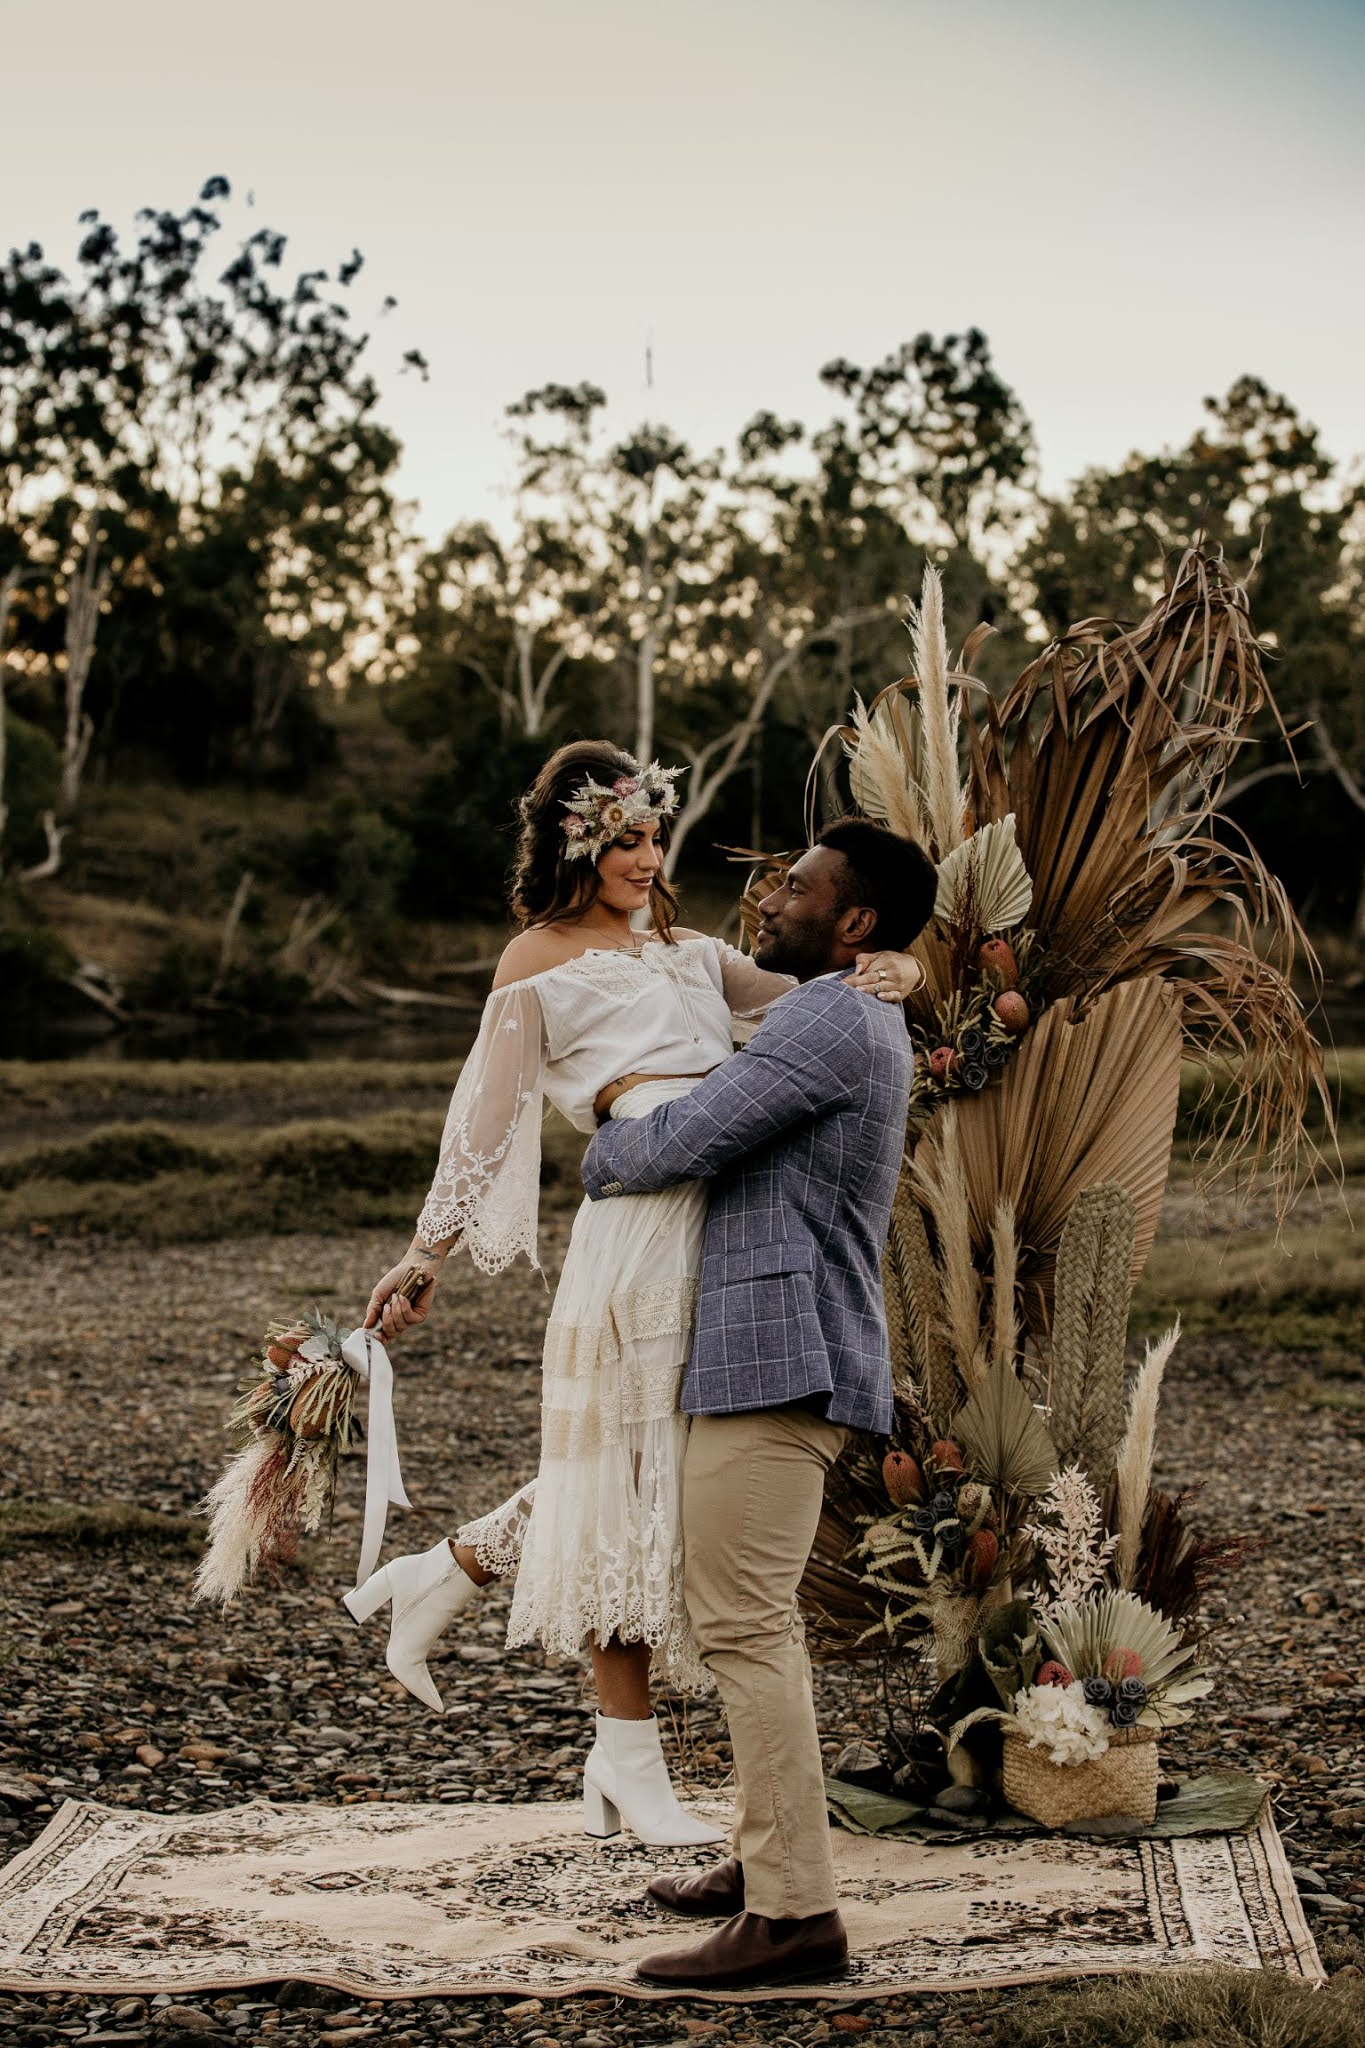 STYLED SHOOT: WHERE THE WILD HEARTS ARE | BRIDAL EDIT TANNUM SANDS QLD